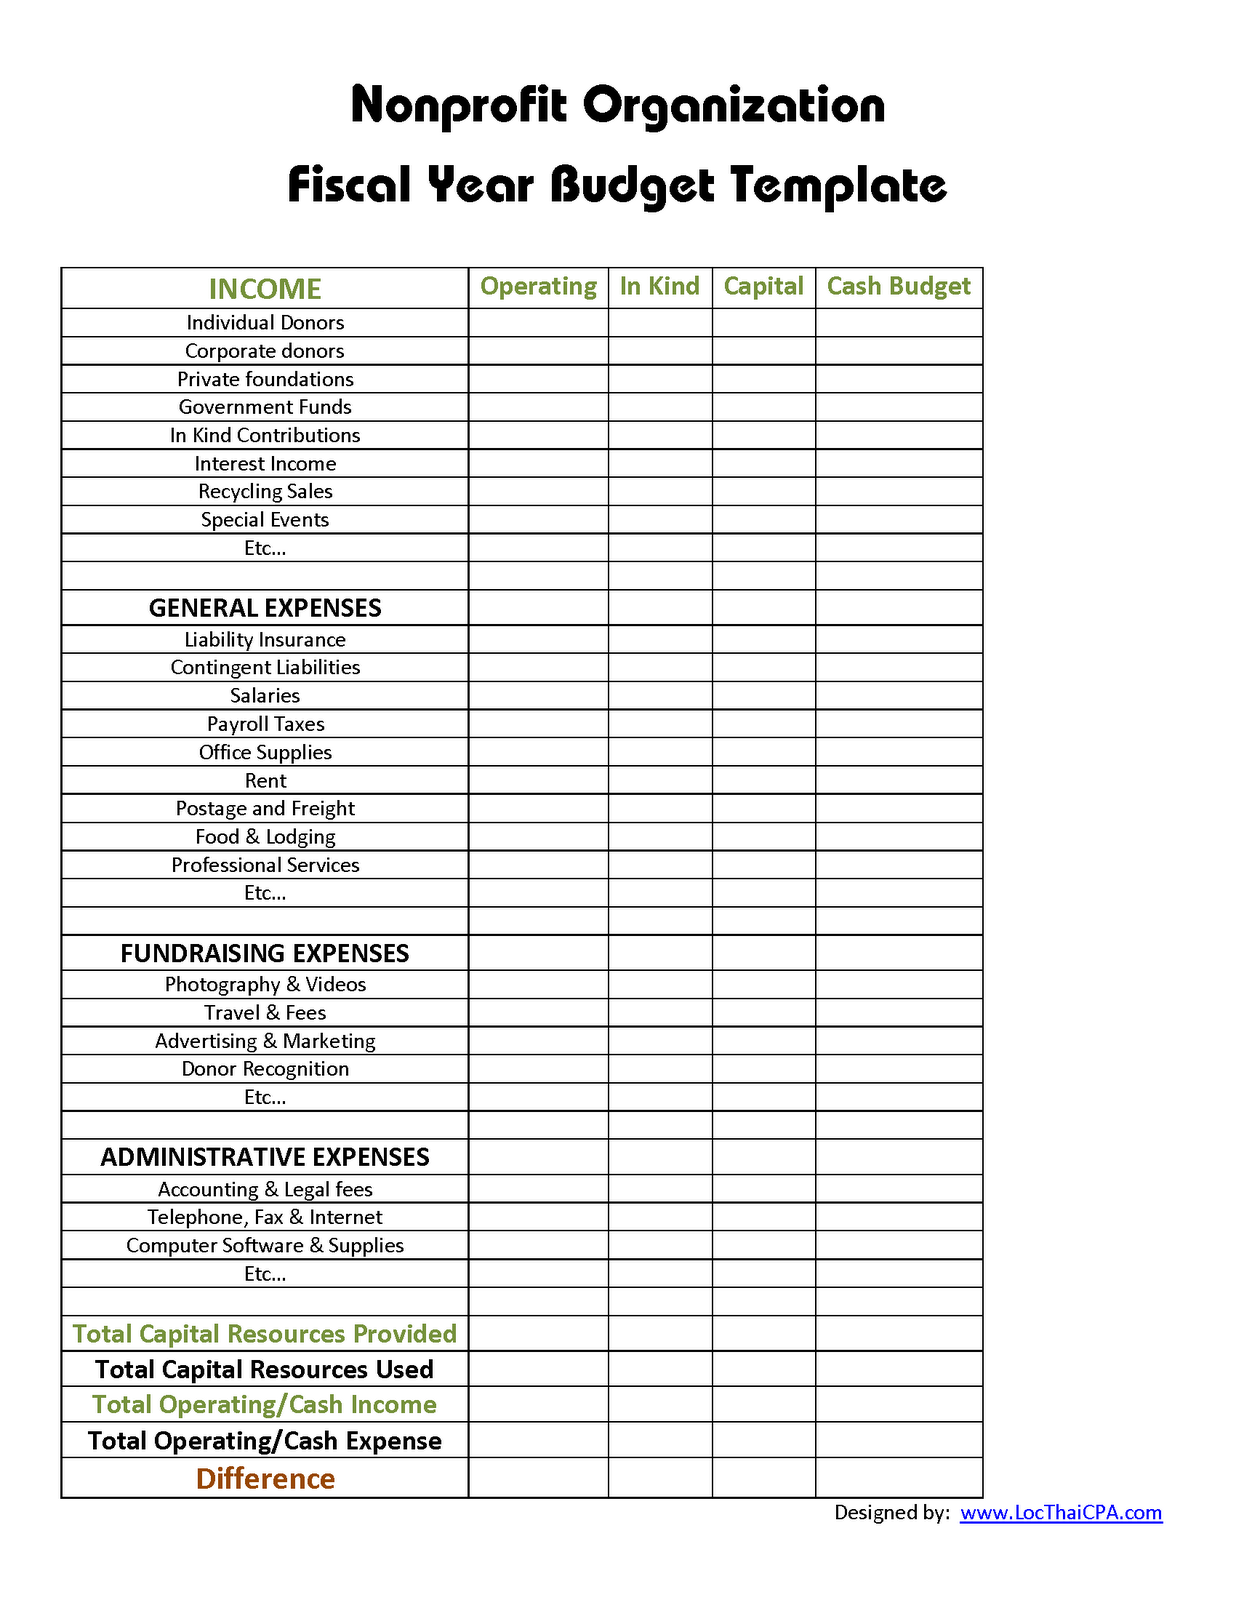 Organization Budget Template Yahoo Image Search Results